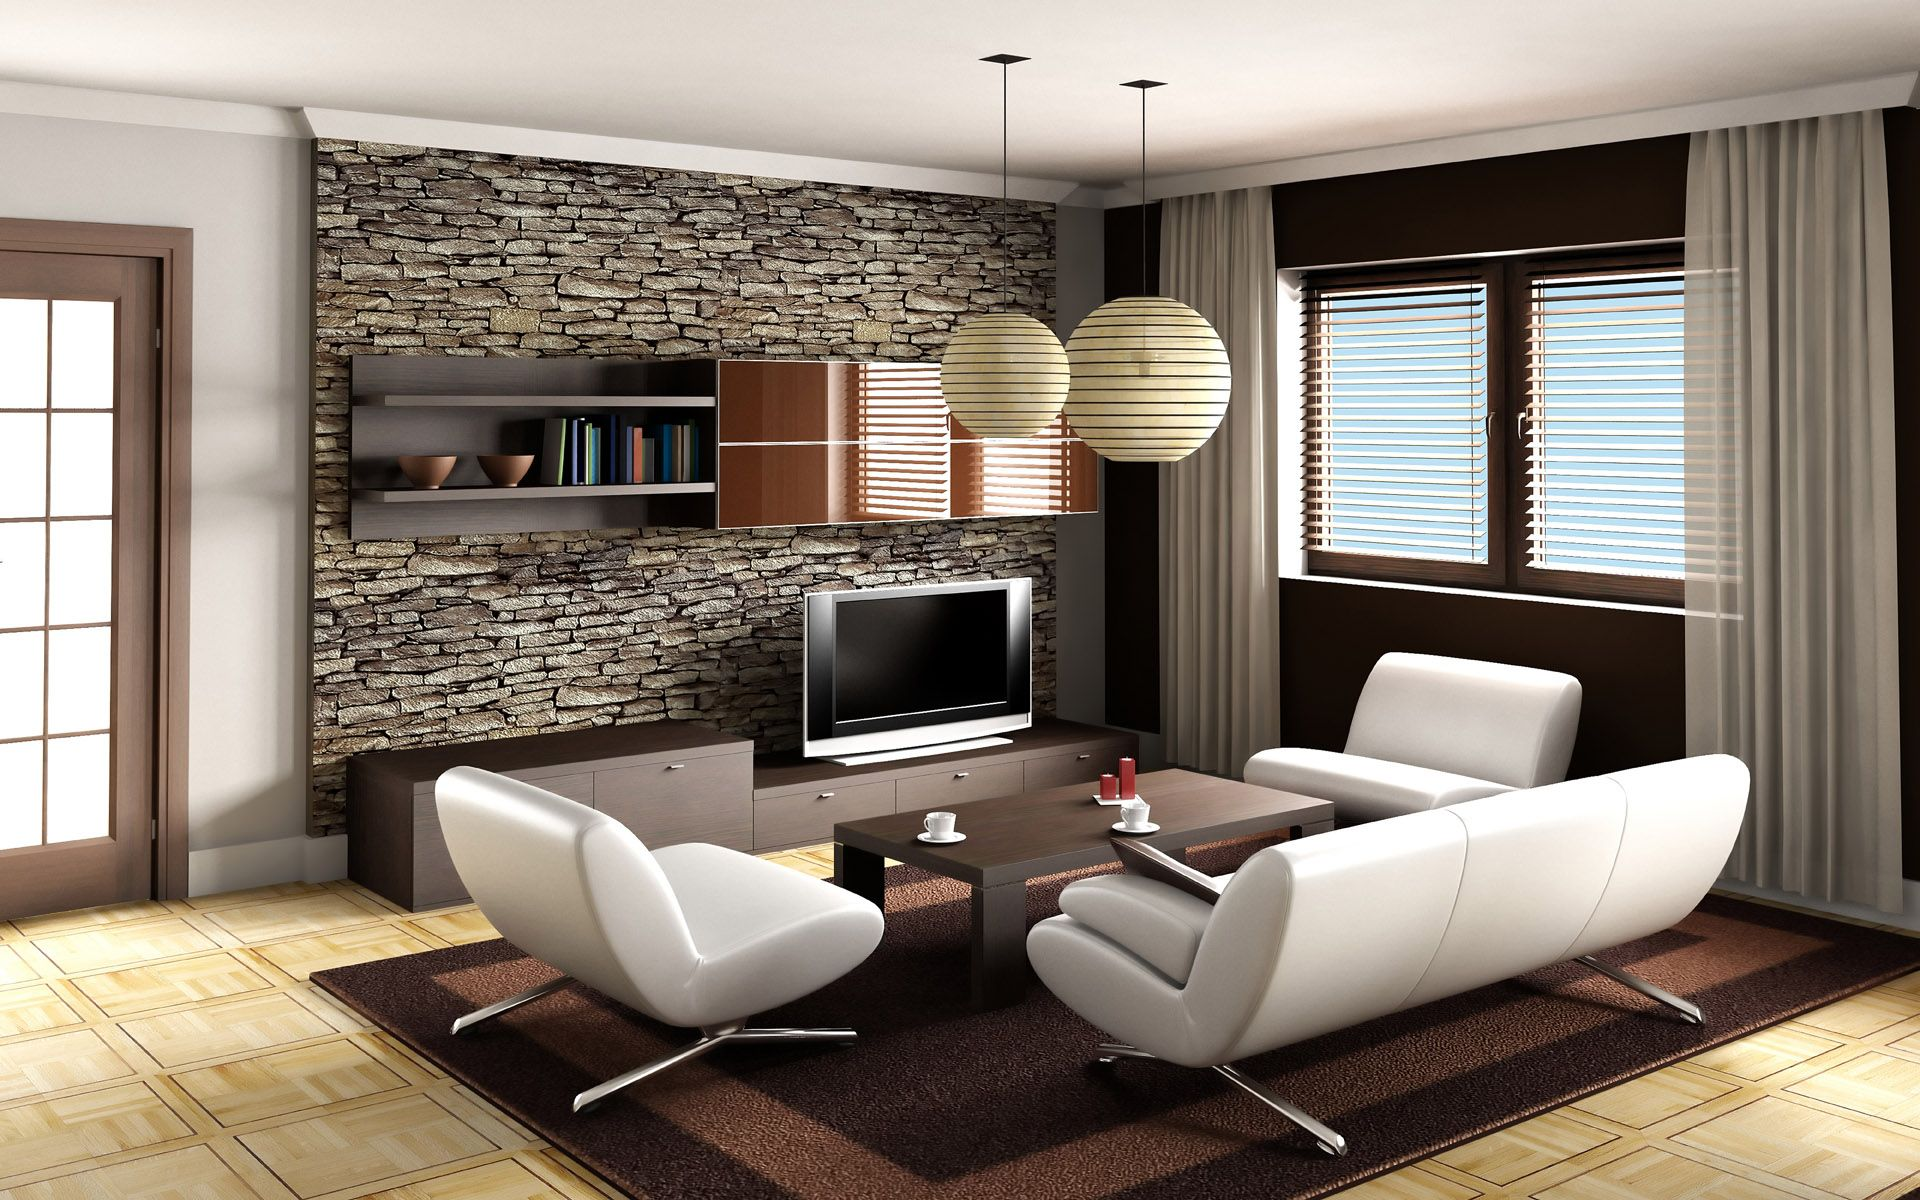 are you looking for small living room ideas to make the limited space in your living